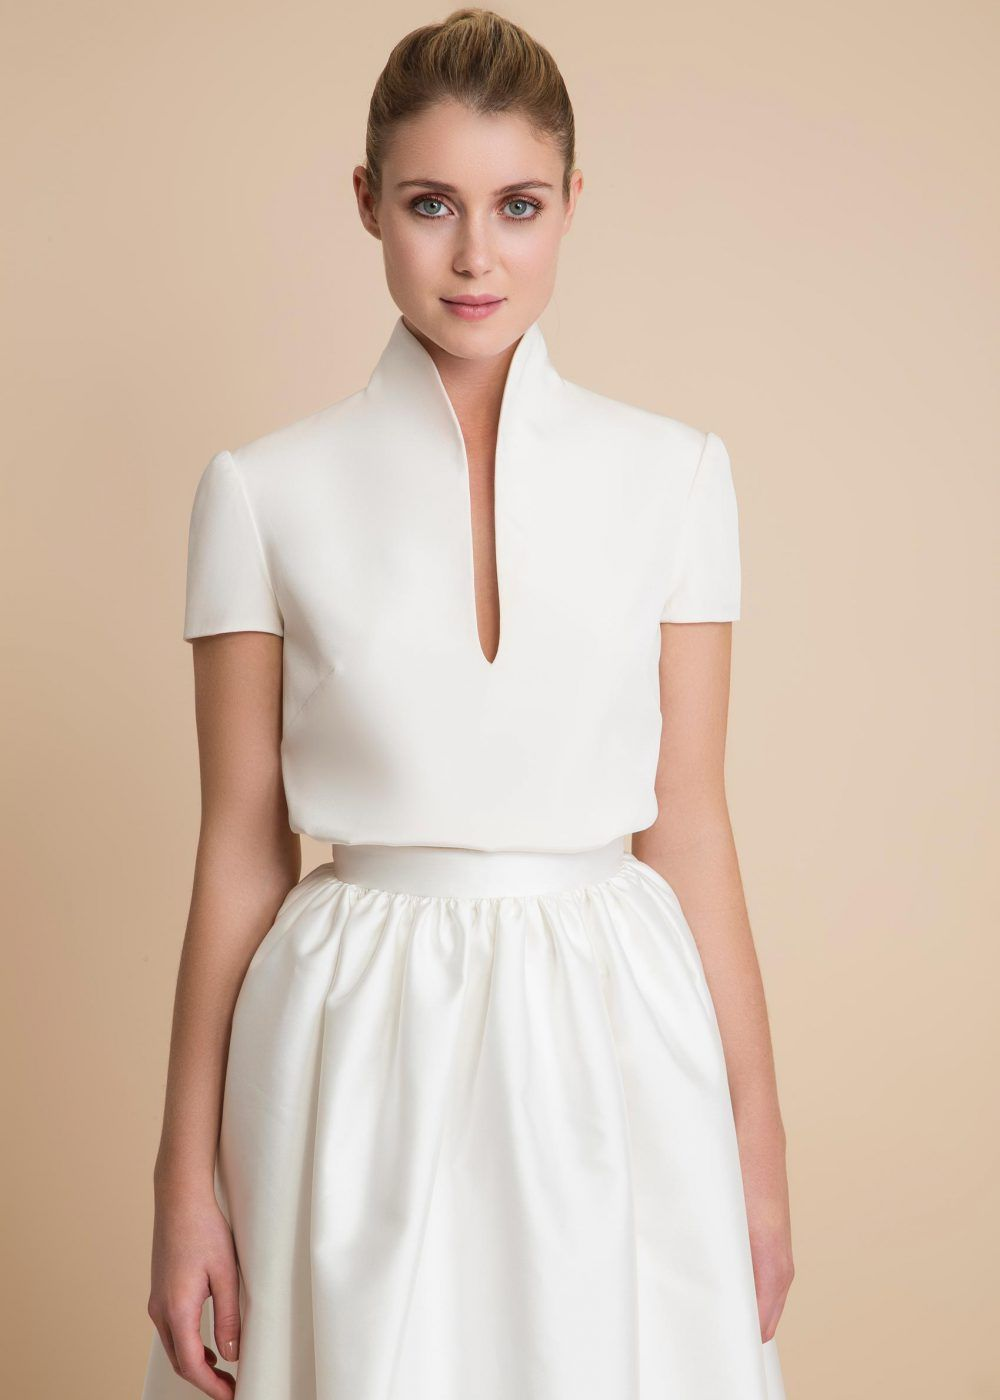 bridal separates, Delphine Manivet, bridal two piece, short skirt, high collar top